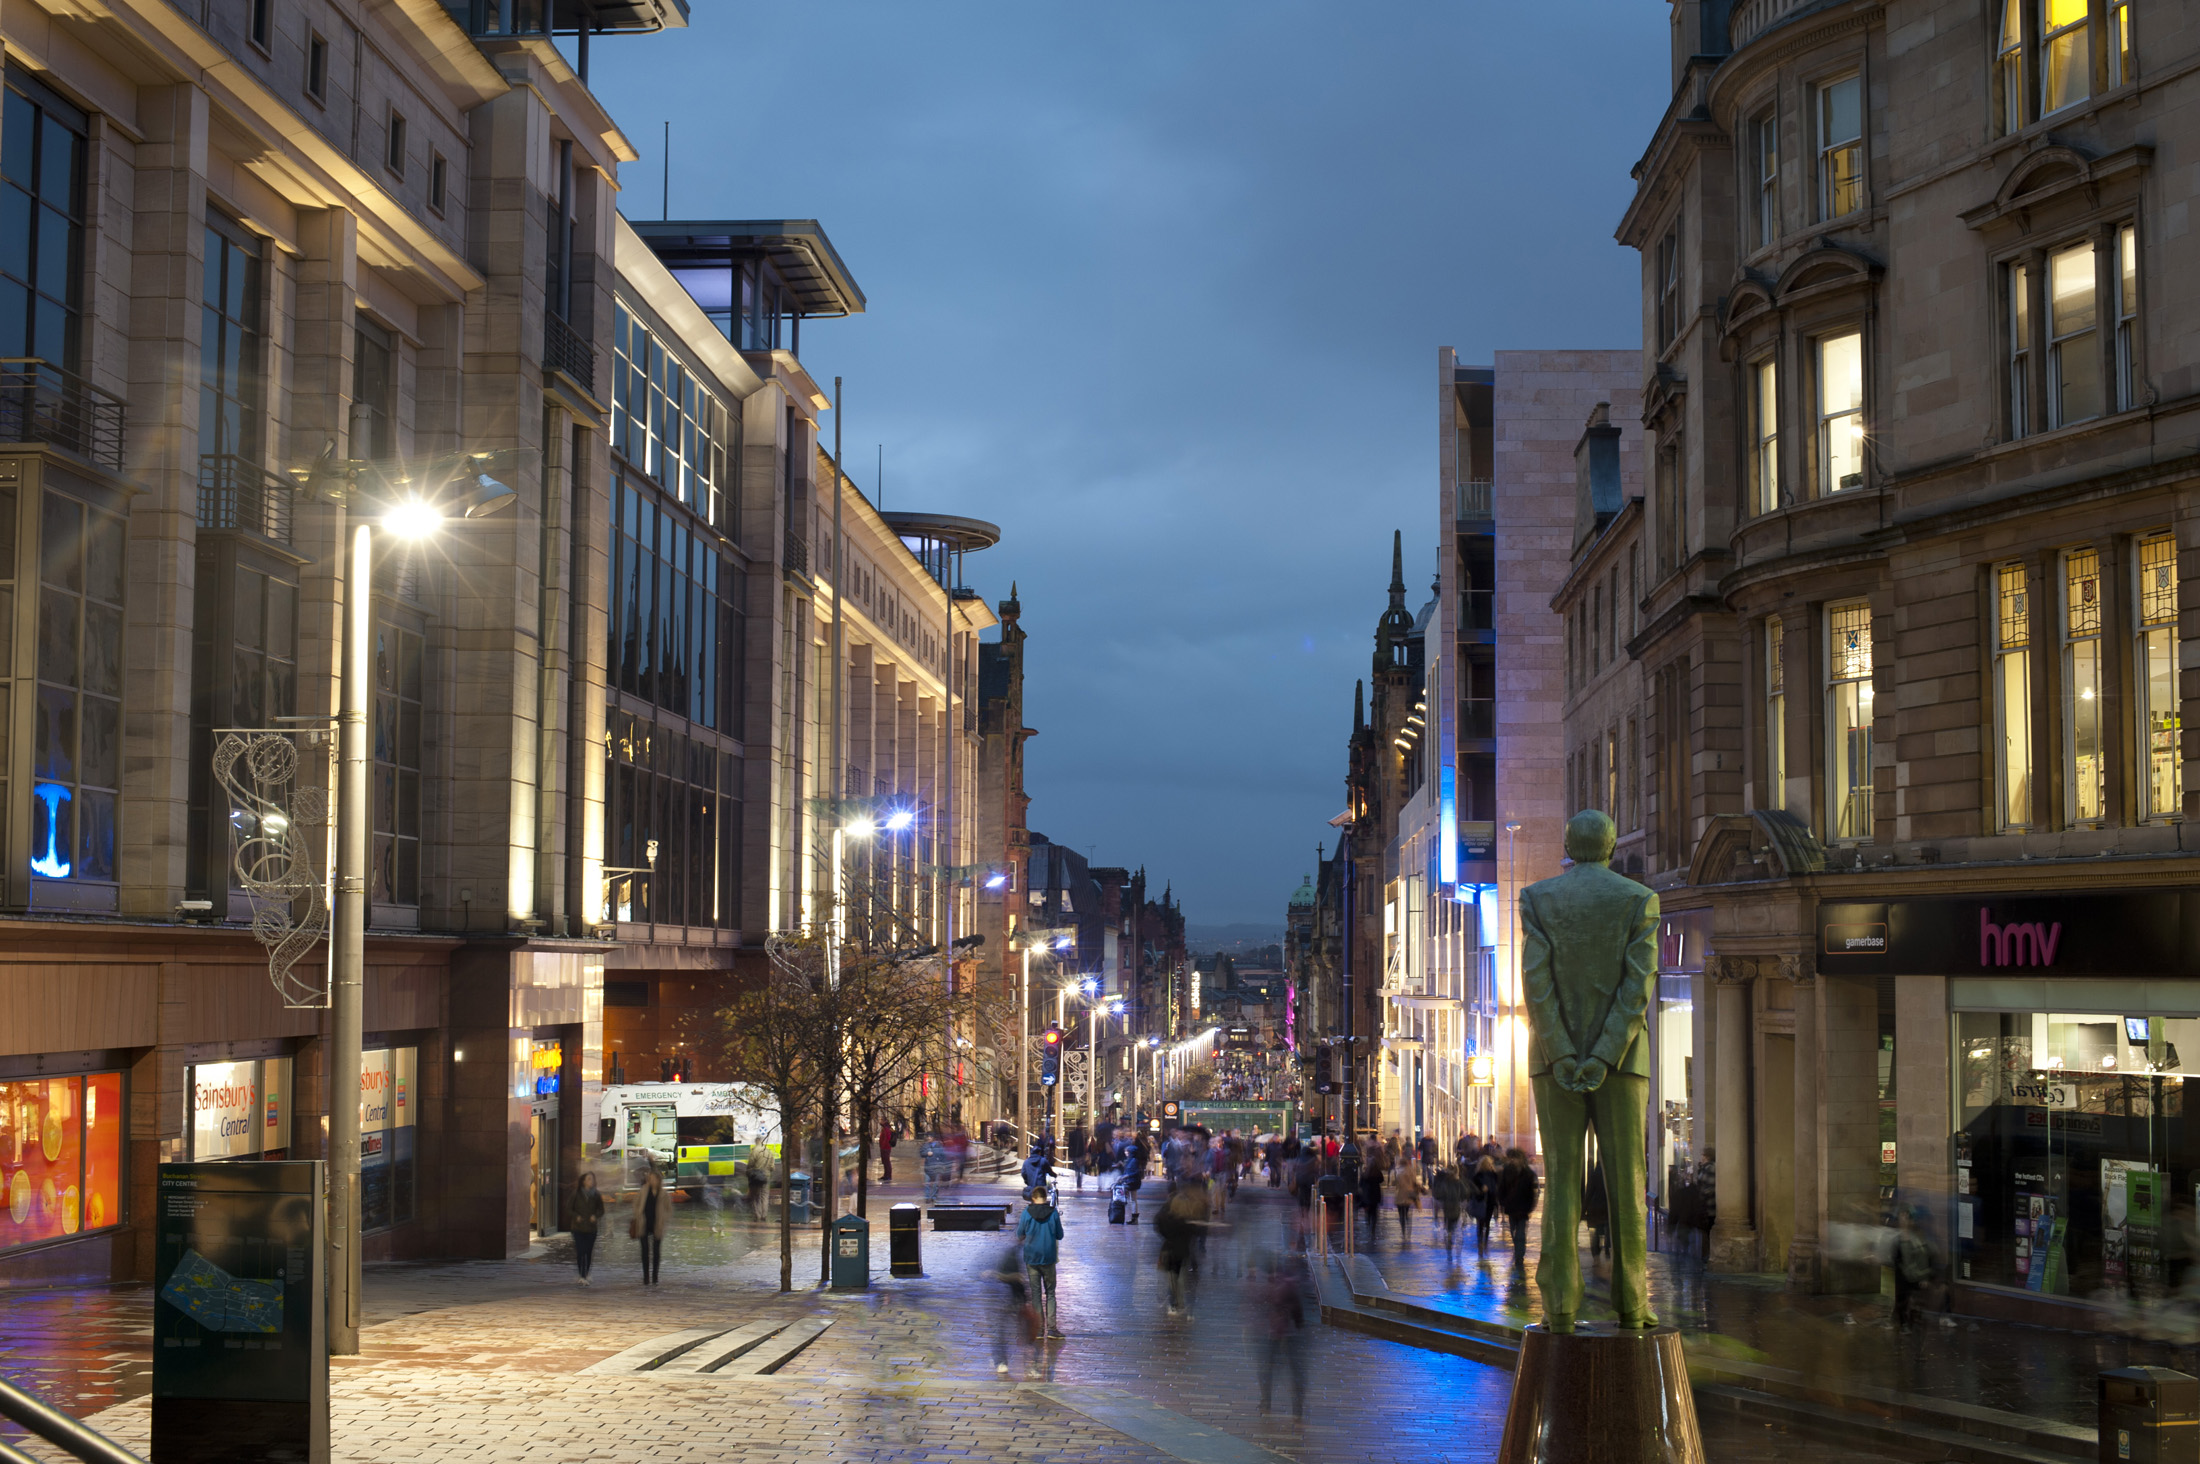 Buchanan Street in Glasgow at night lined with colourful shops and pedestrian shoppers walking the sidewalks